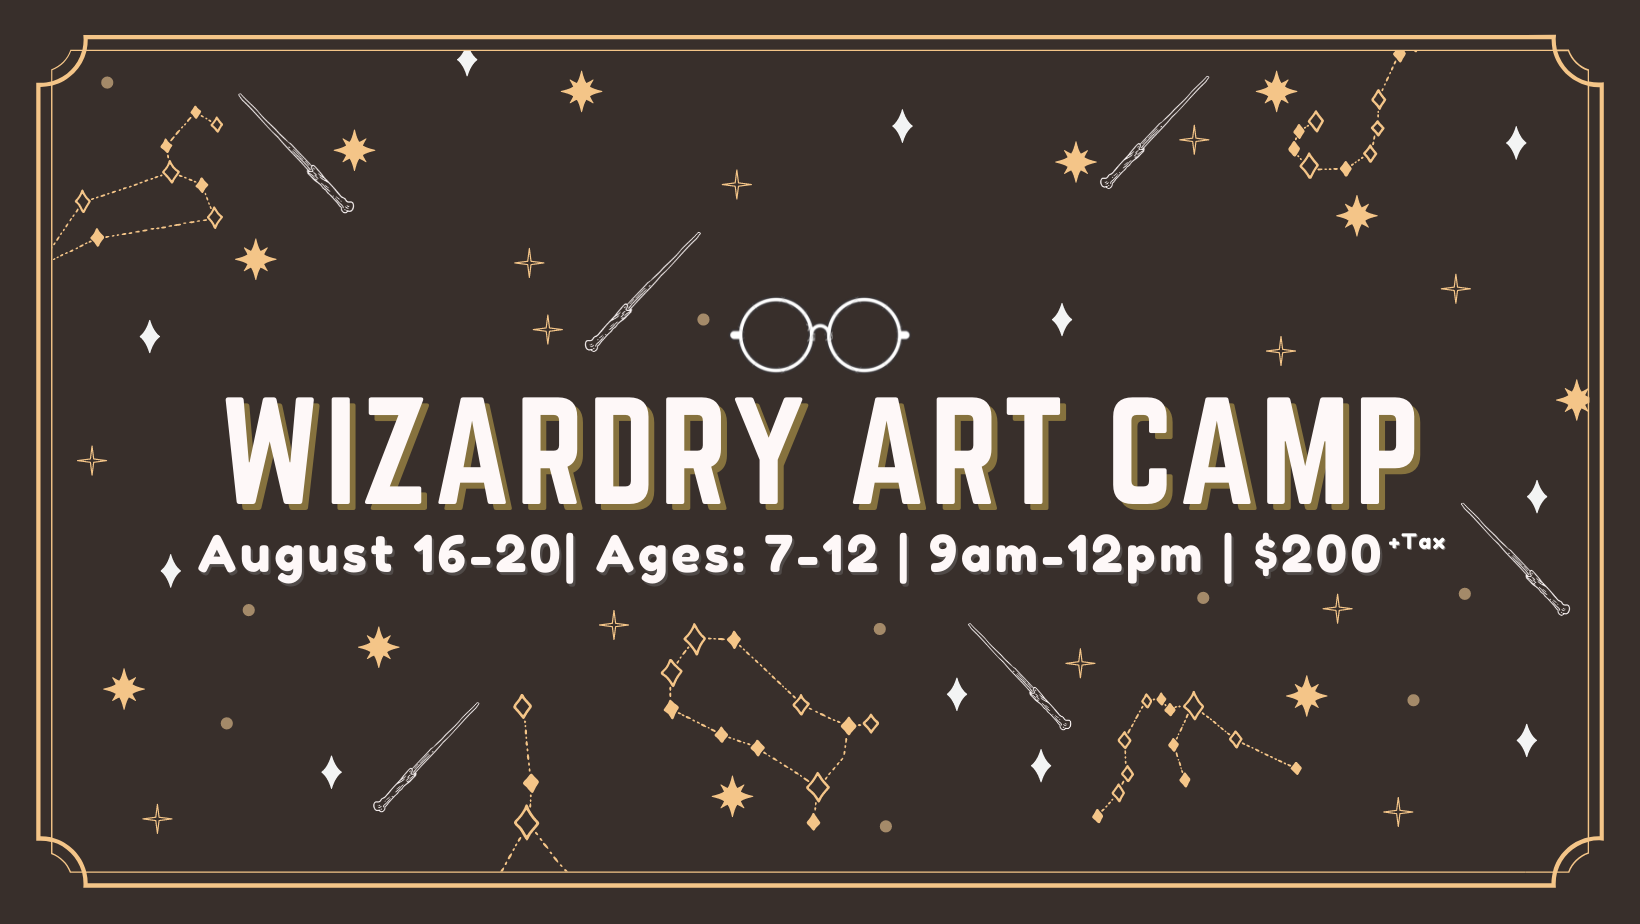 Wizardry Art Camp (sold out)